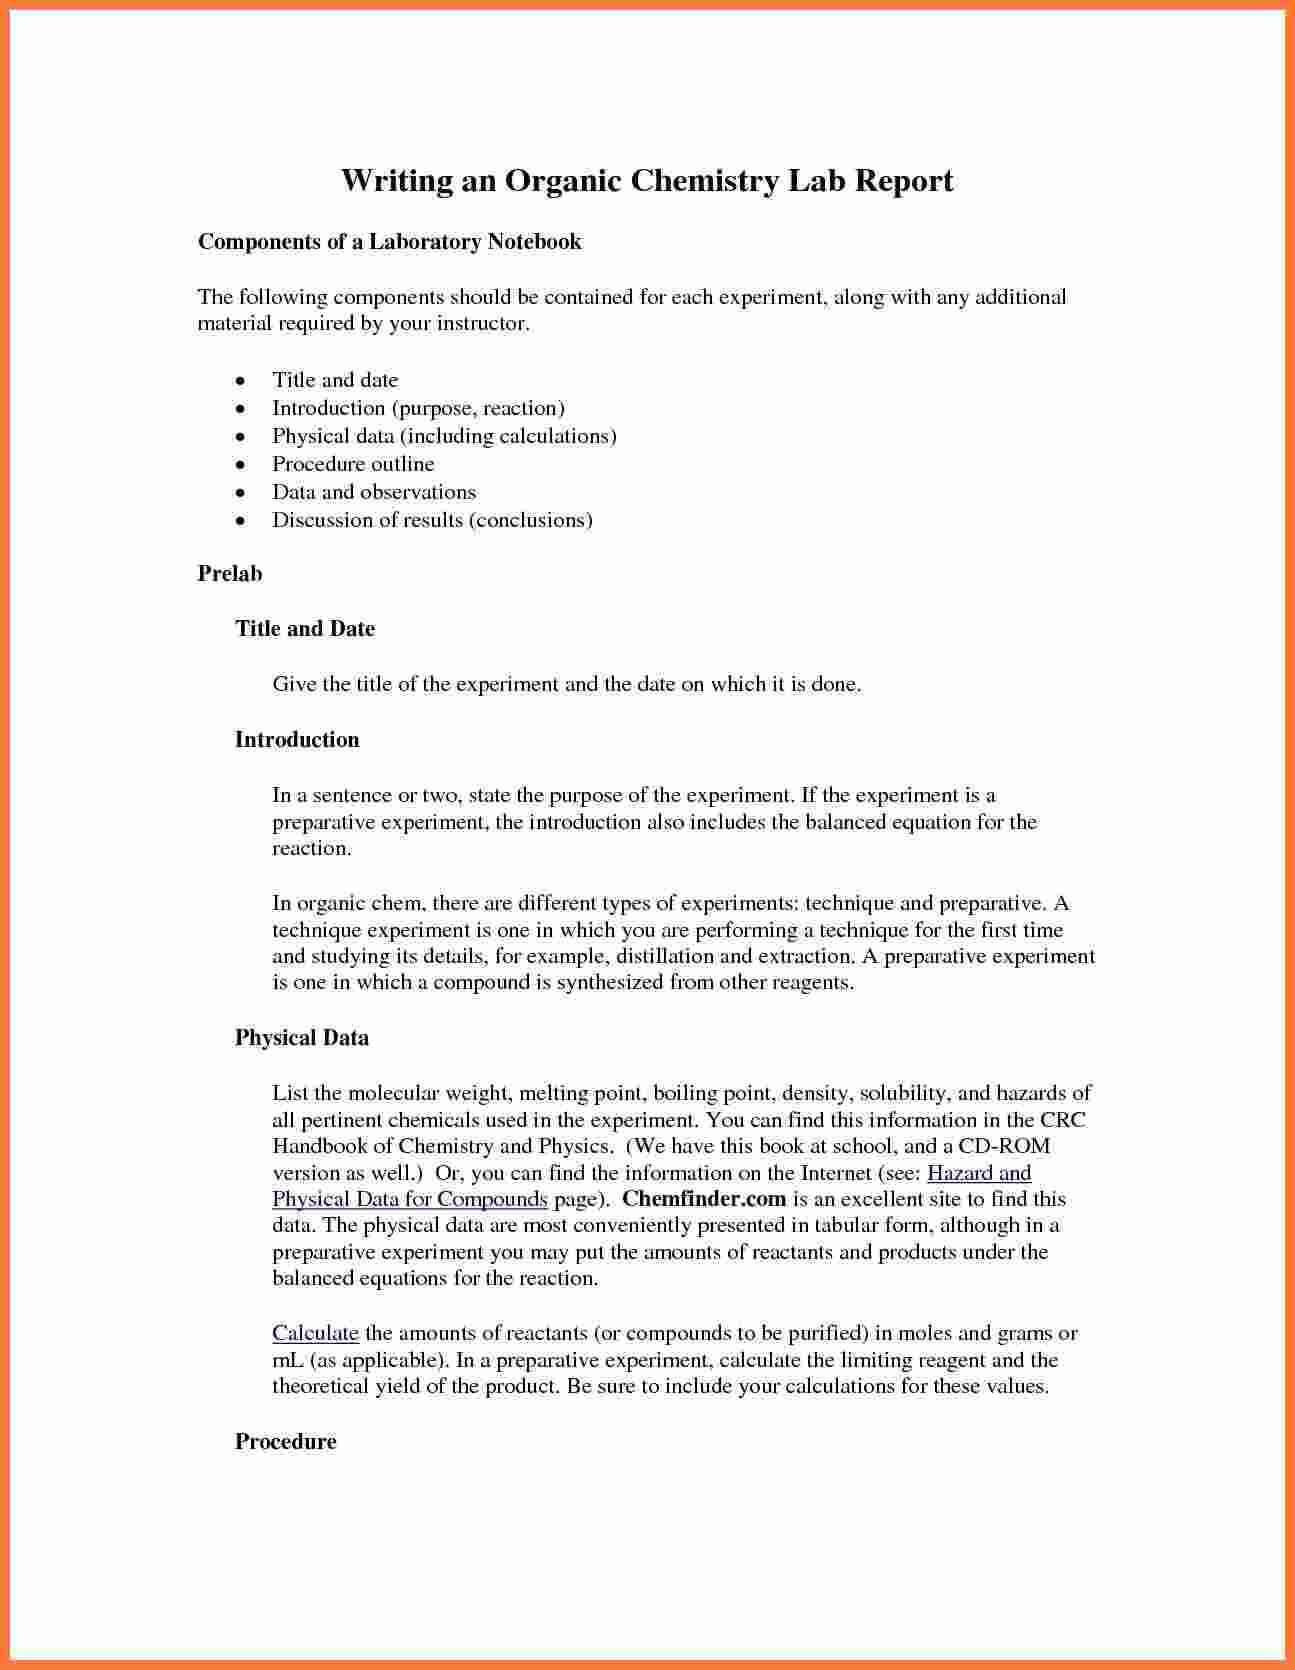 003 Organic Chemistry Lab Report Example Also Ibmistry With Chemistry Lab Report Template